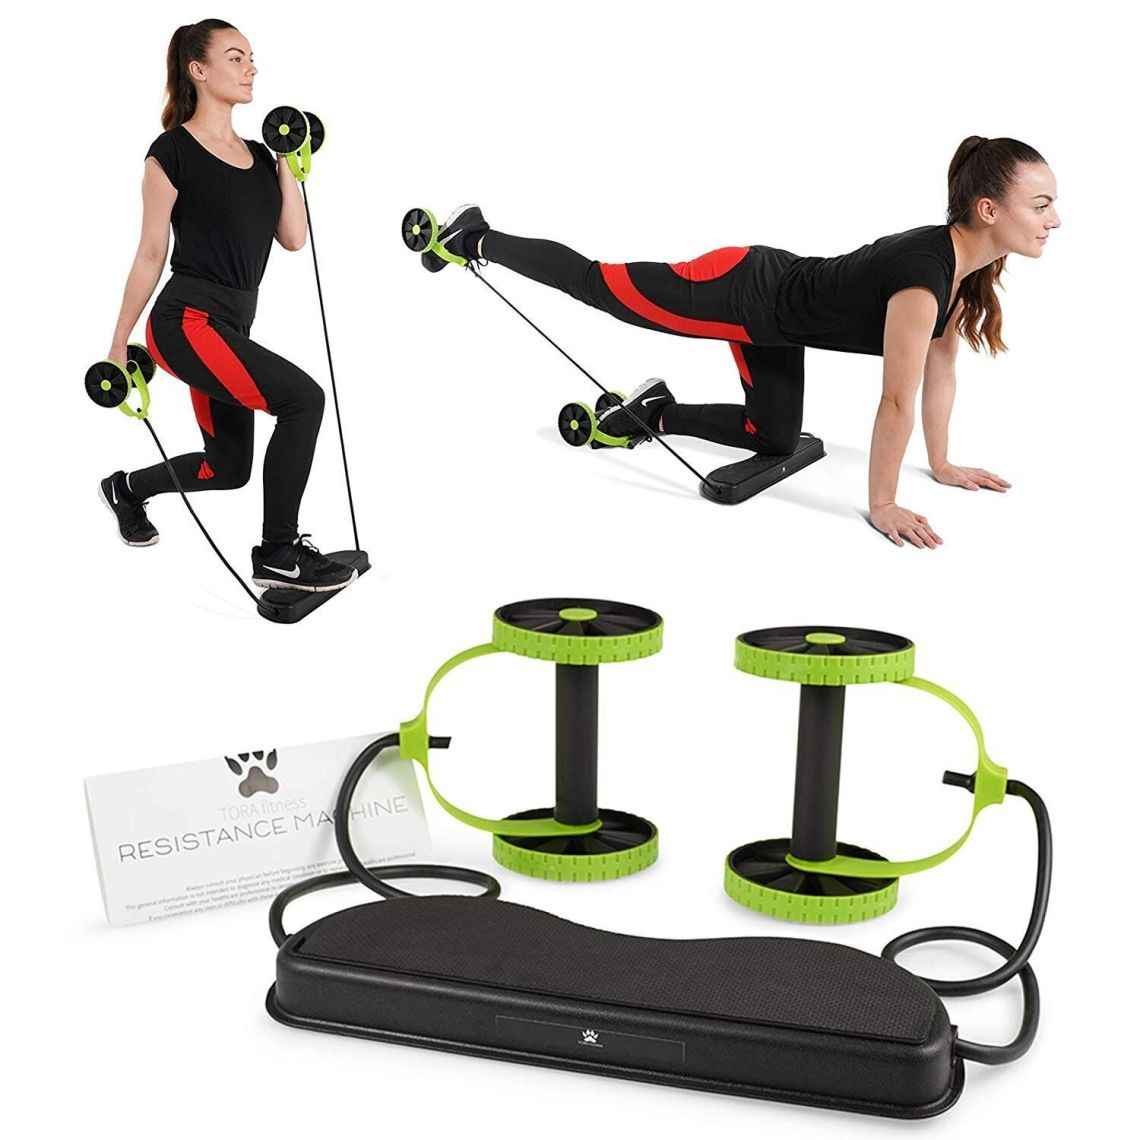 Tora Fitness 40 in 1 Resistance Band Home Workout Machine, Amazon, £9.95